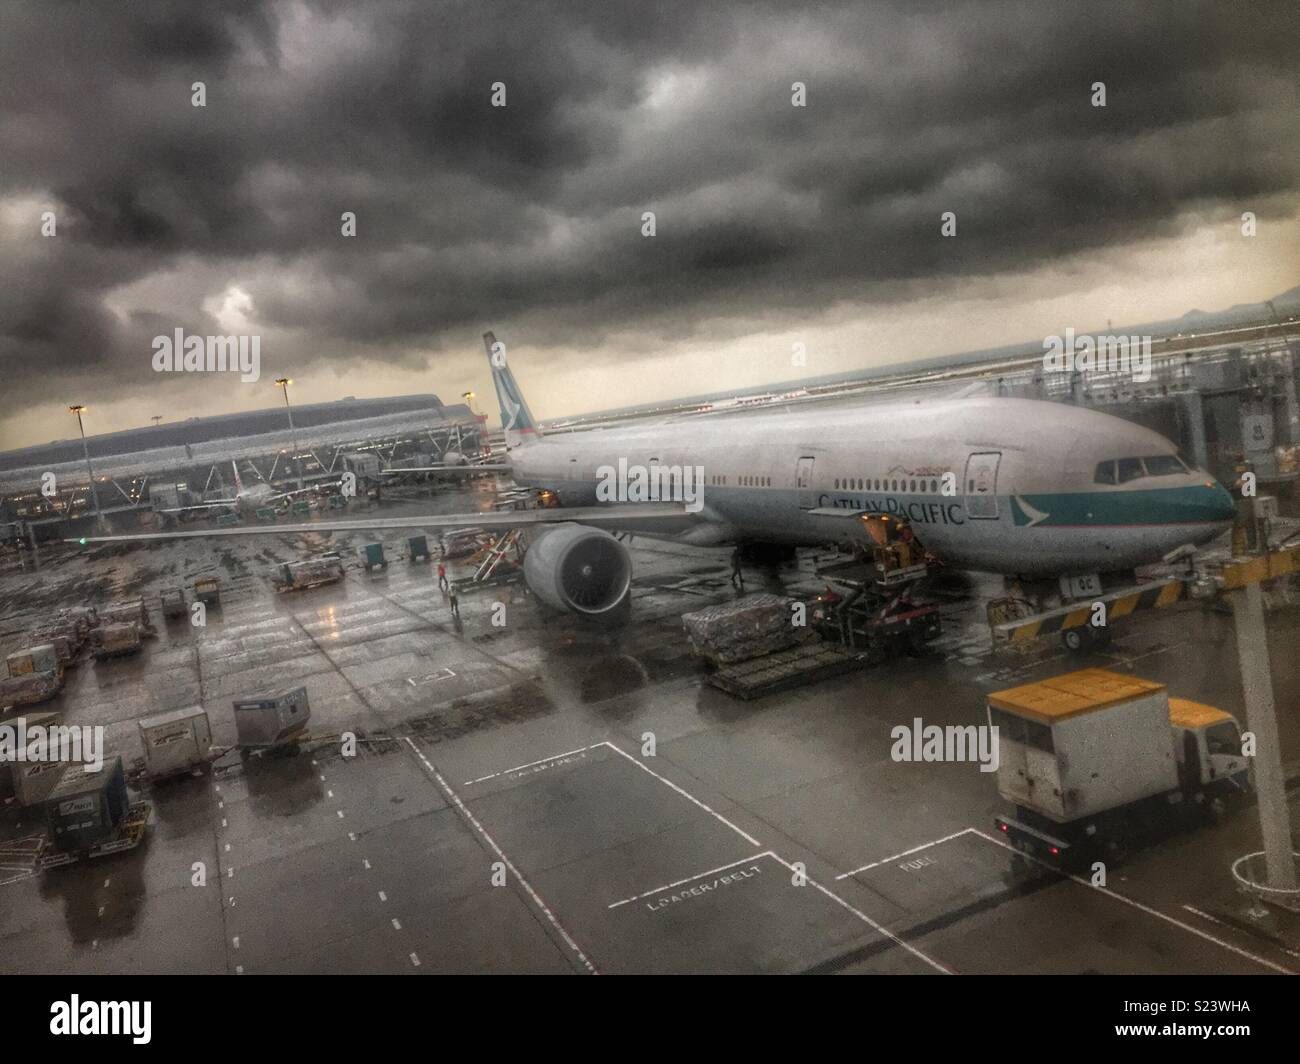 A Cathay Pacific Boeing 777 being loaded on the apron at Hong Kong International Airport - Stock Image